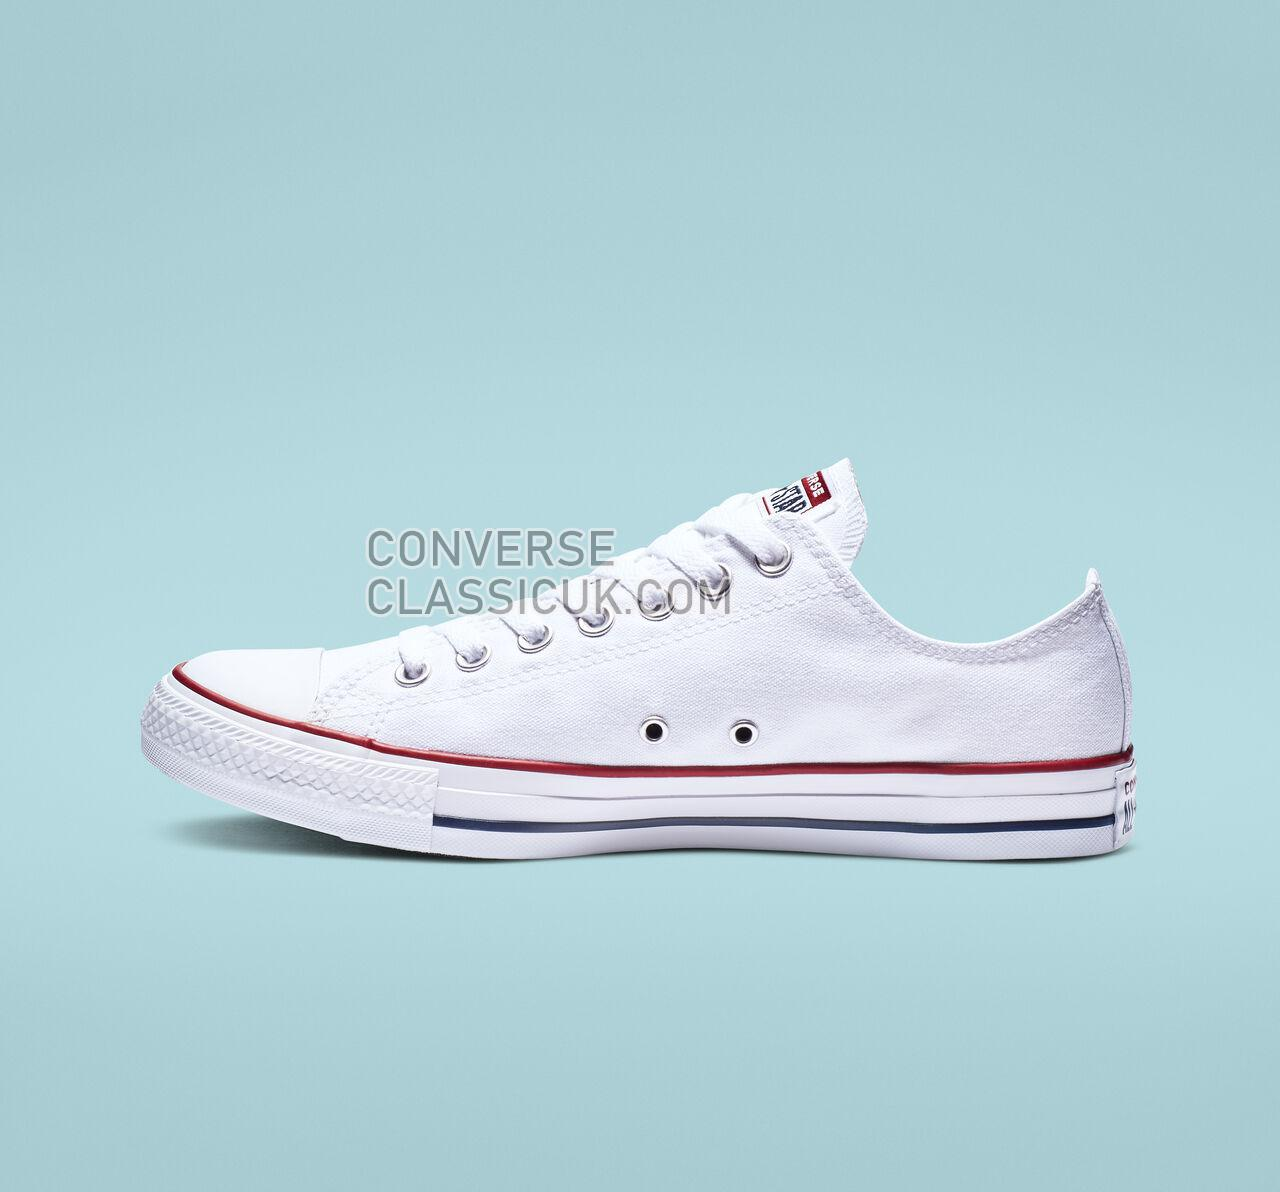 Converse Chuck Taylor All Star Low Top Mens Womens Unisex M7652 Optical White Shoes